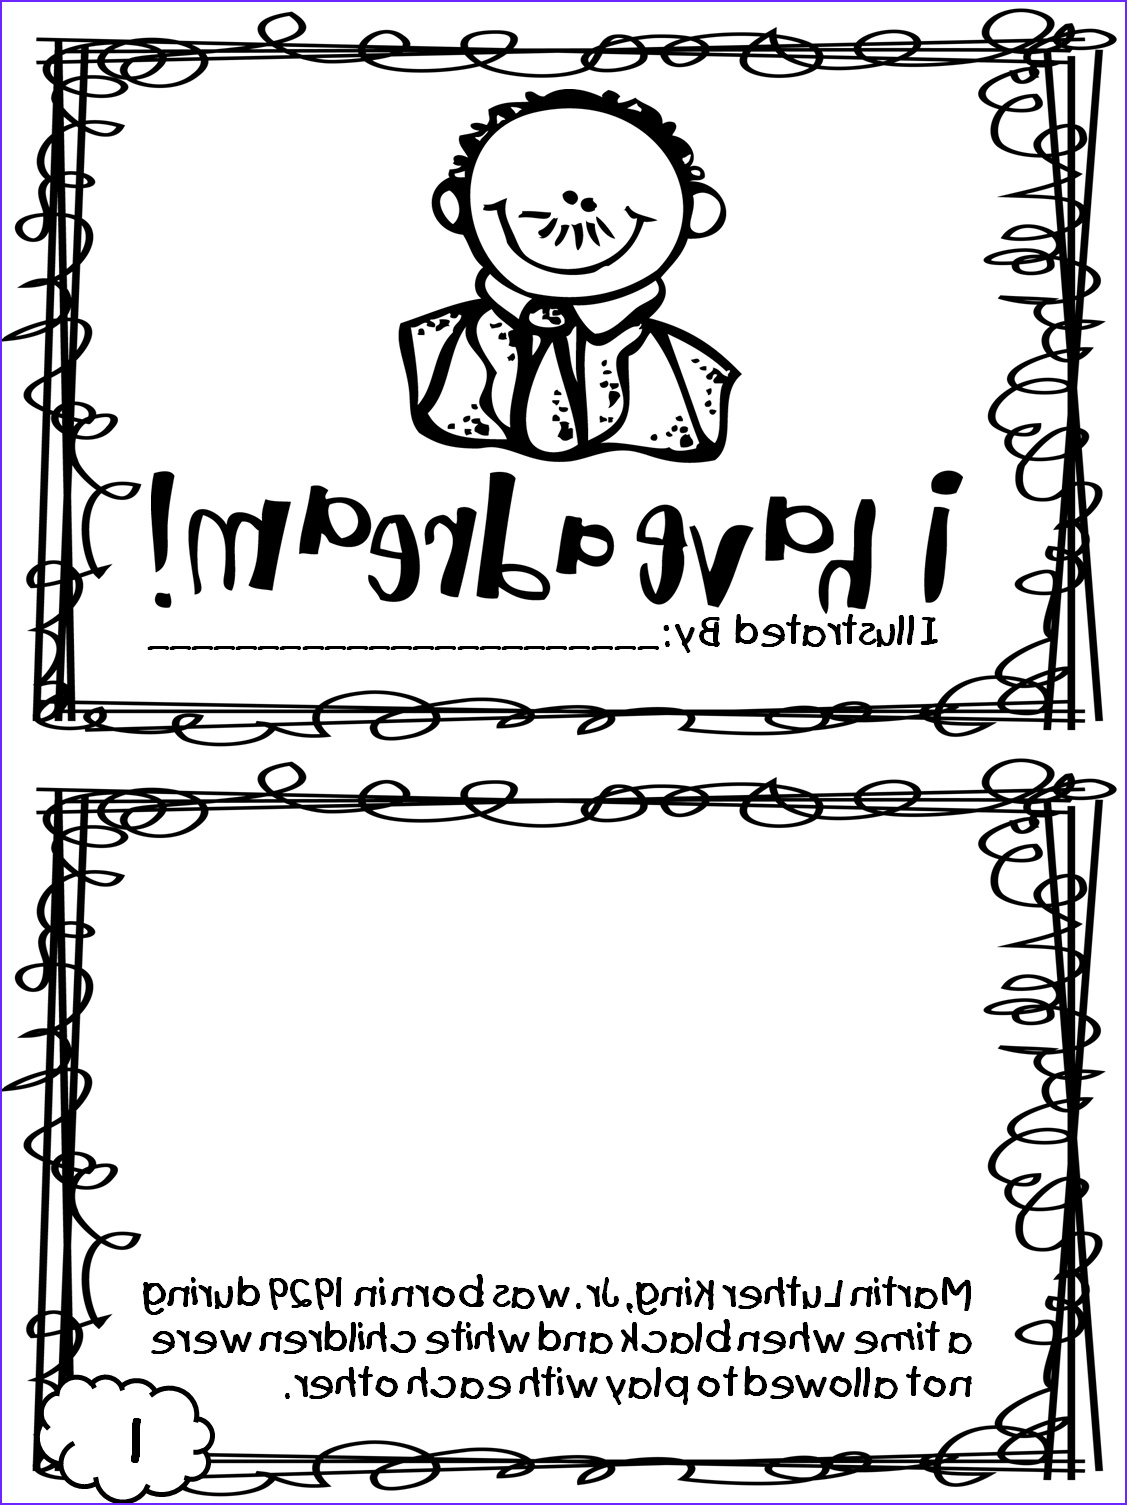 I Have A Dream Coloring Page New Stock Martin Luther King Jr Coloring Pages and Worksheets Best